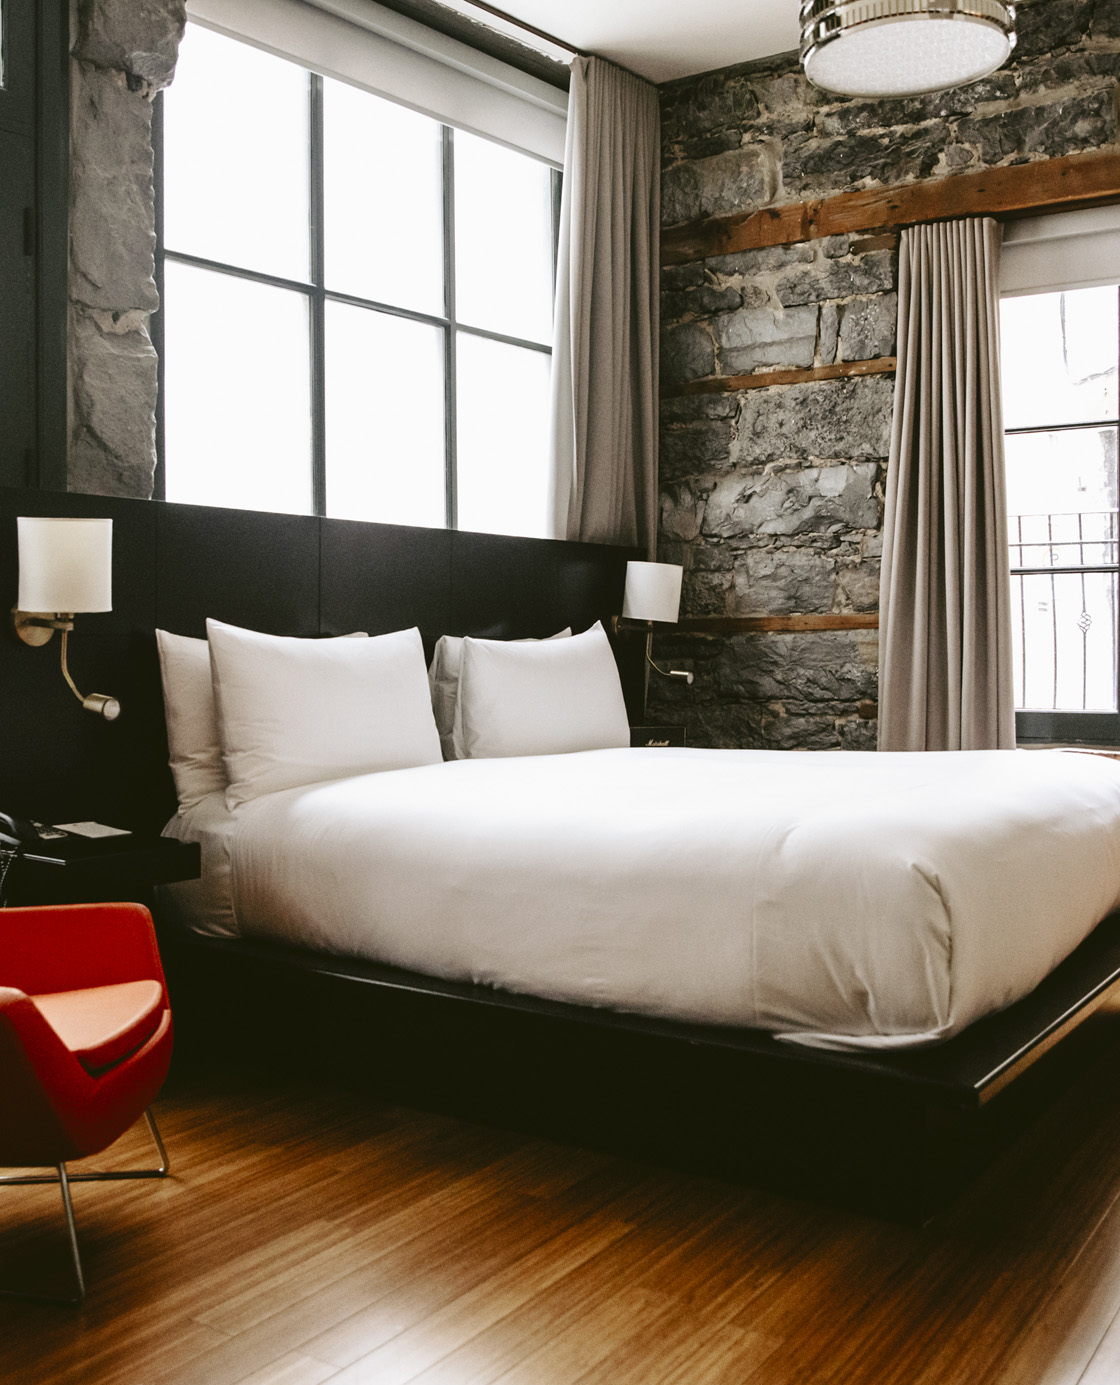 A bed in front of a stone wall and a window in one of the rooms of Le Petit Hôtel.